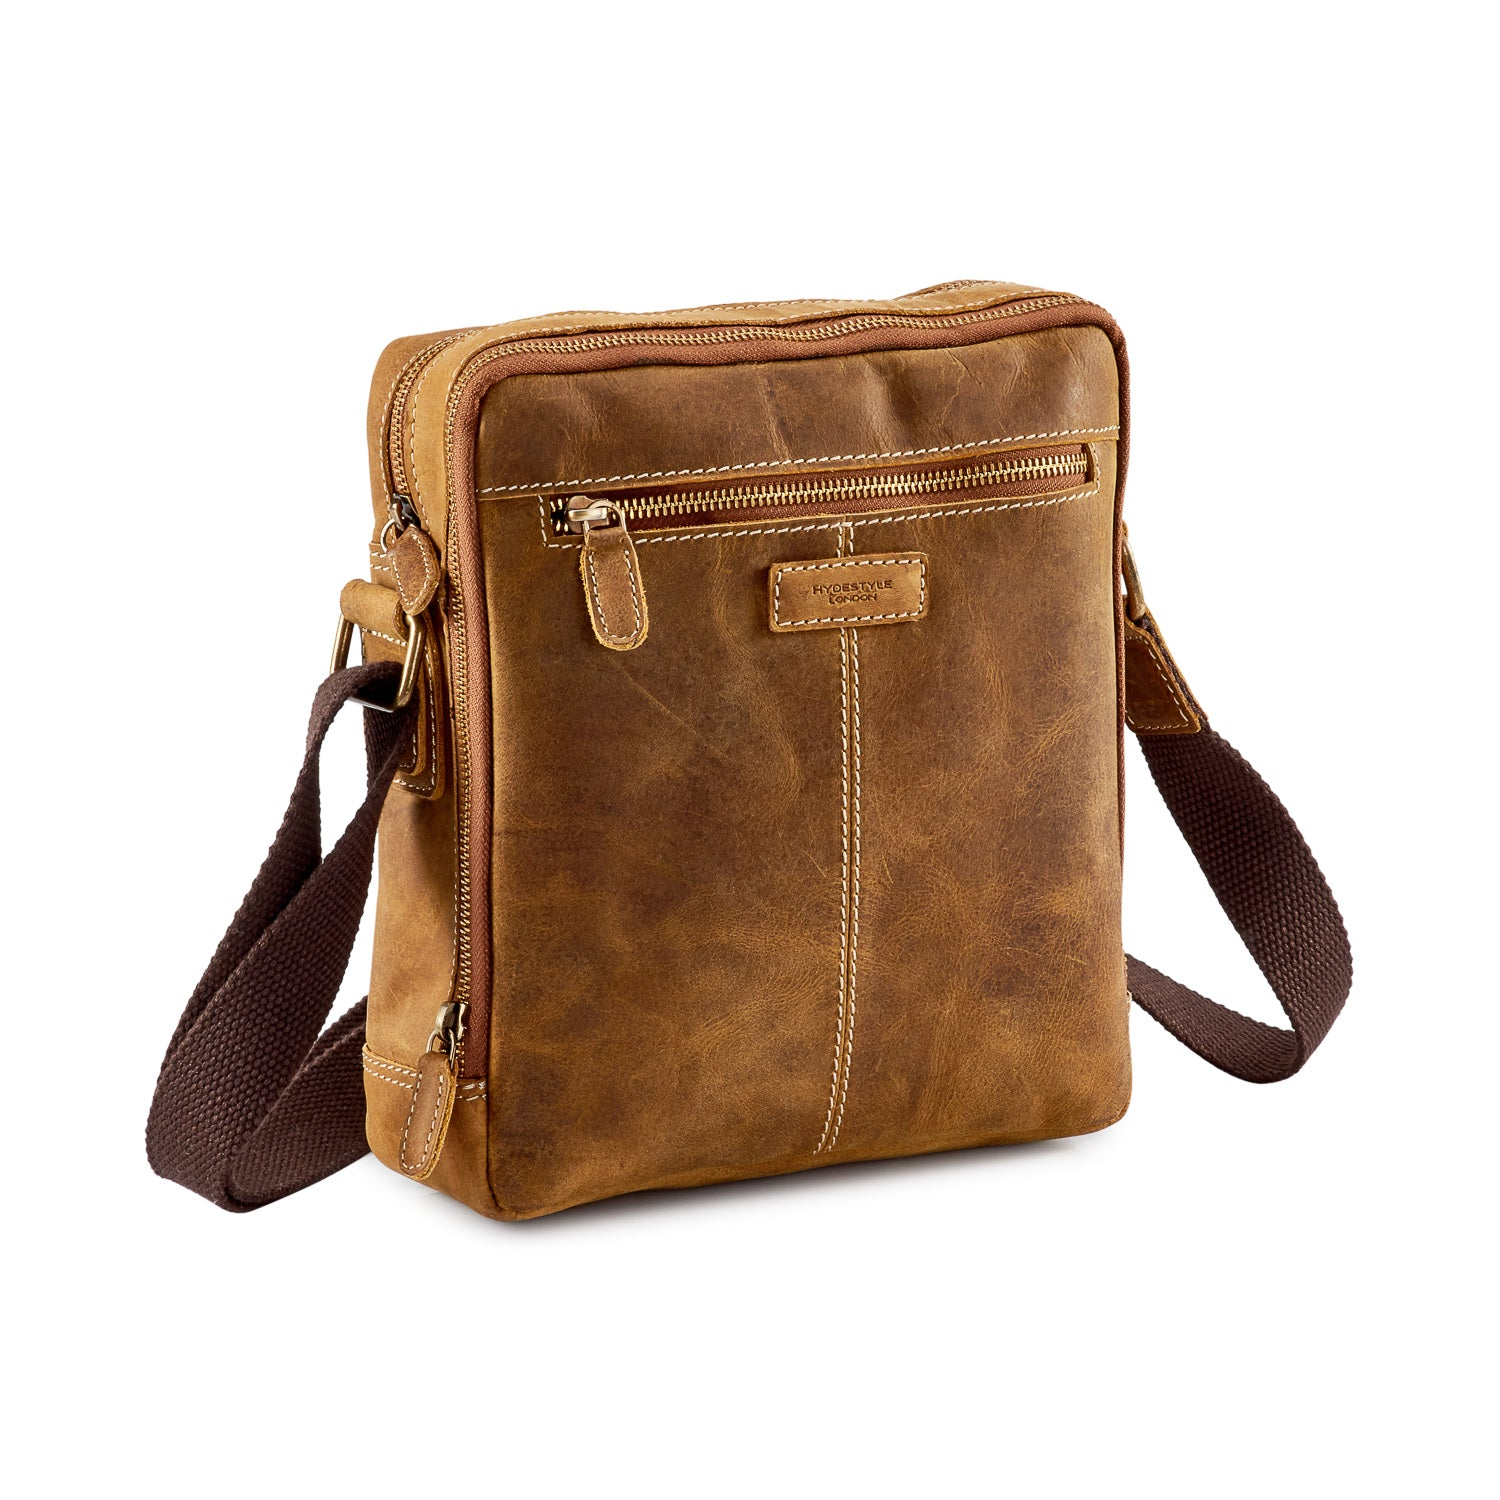 701a4e26a9 Venator Distressed Leather Portrait Messenger Bag  MB4973